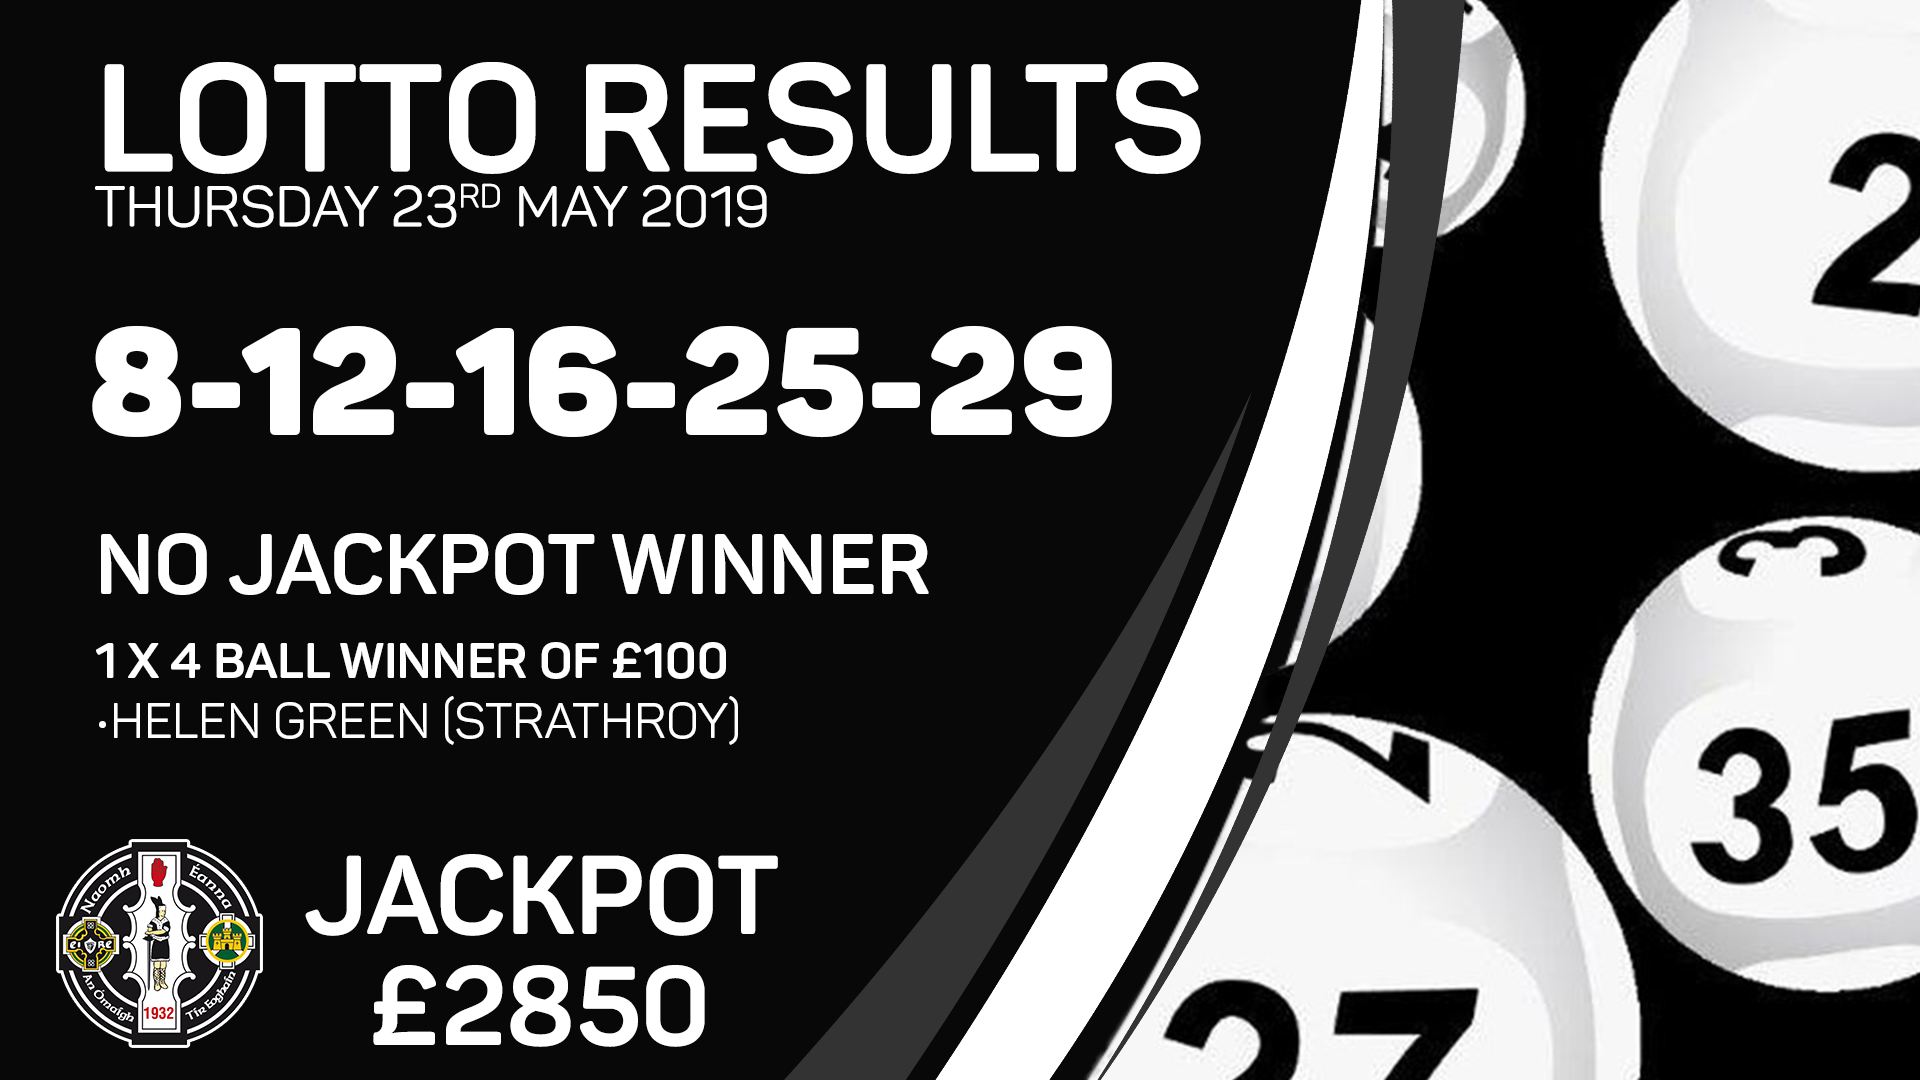 Lotto Results – Thursday 23rd May 2019